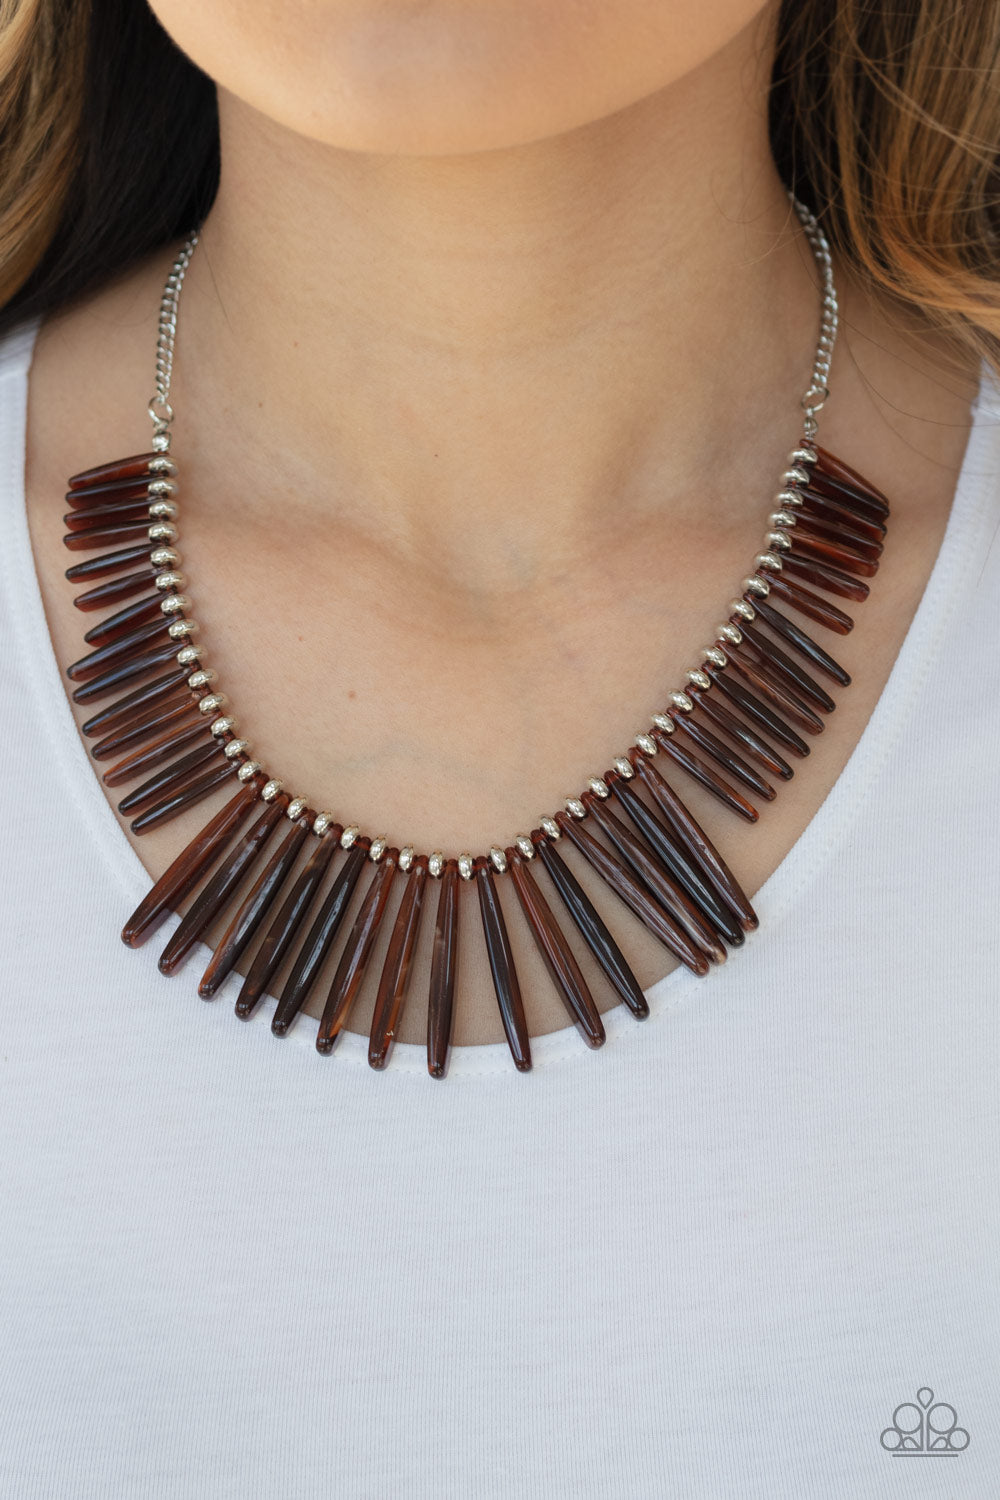 Paparazzi Jewelry & Accessories - Out of My Element - Brown Necklace. Bling By Titia Boutique